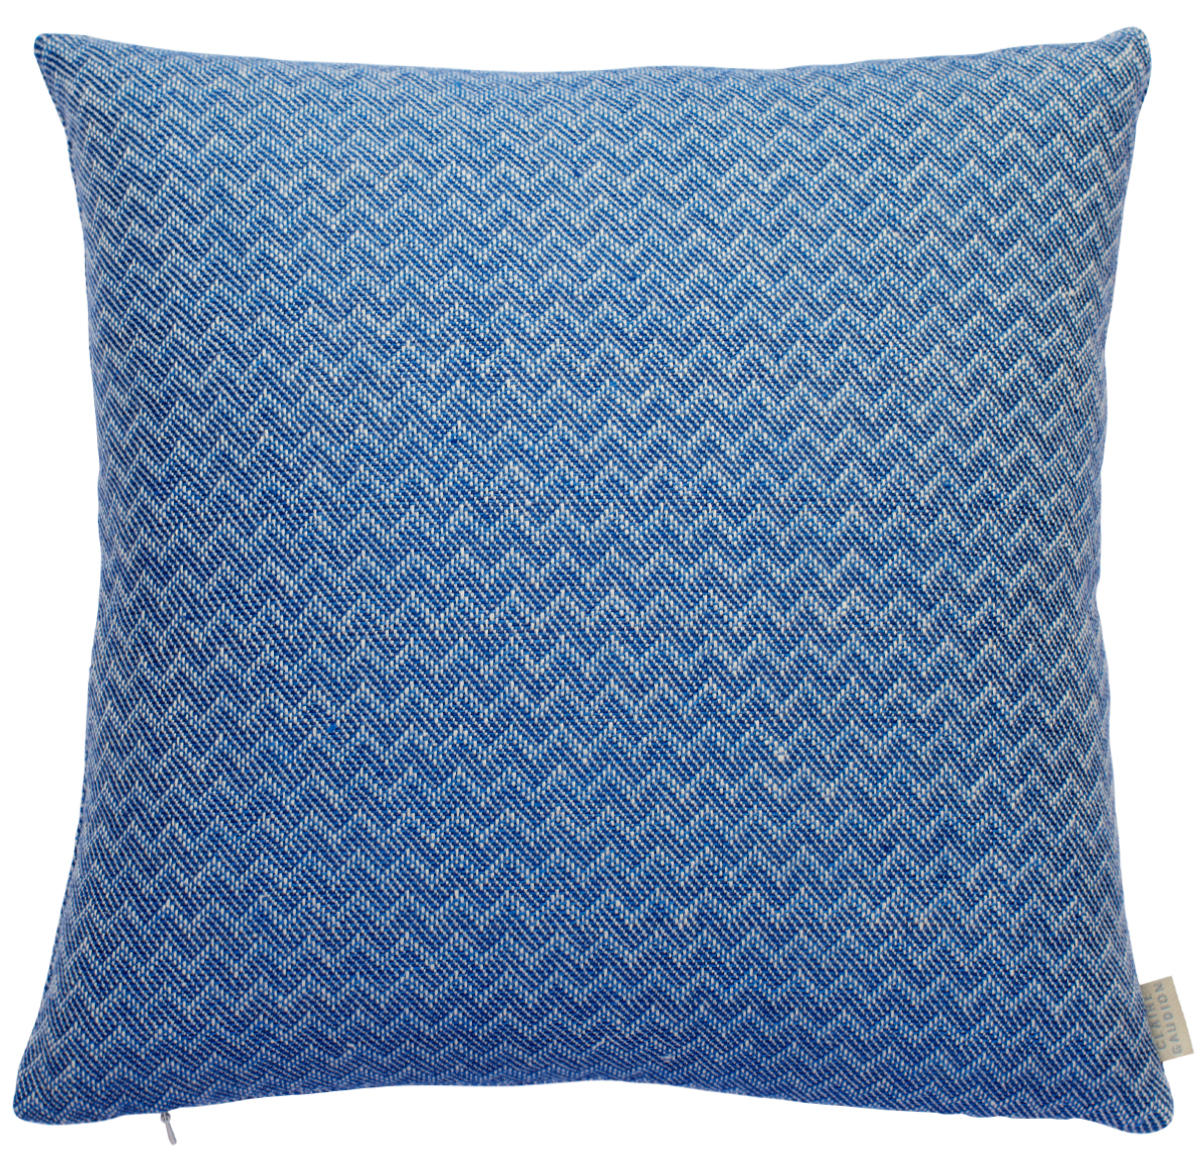 Blue Linen Cushion with chevron pattern by Clairer Gaudion at The Decorcafe